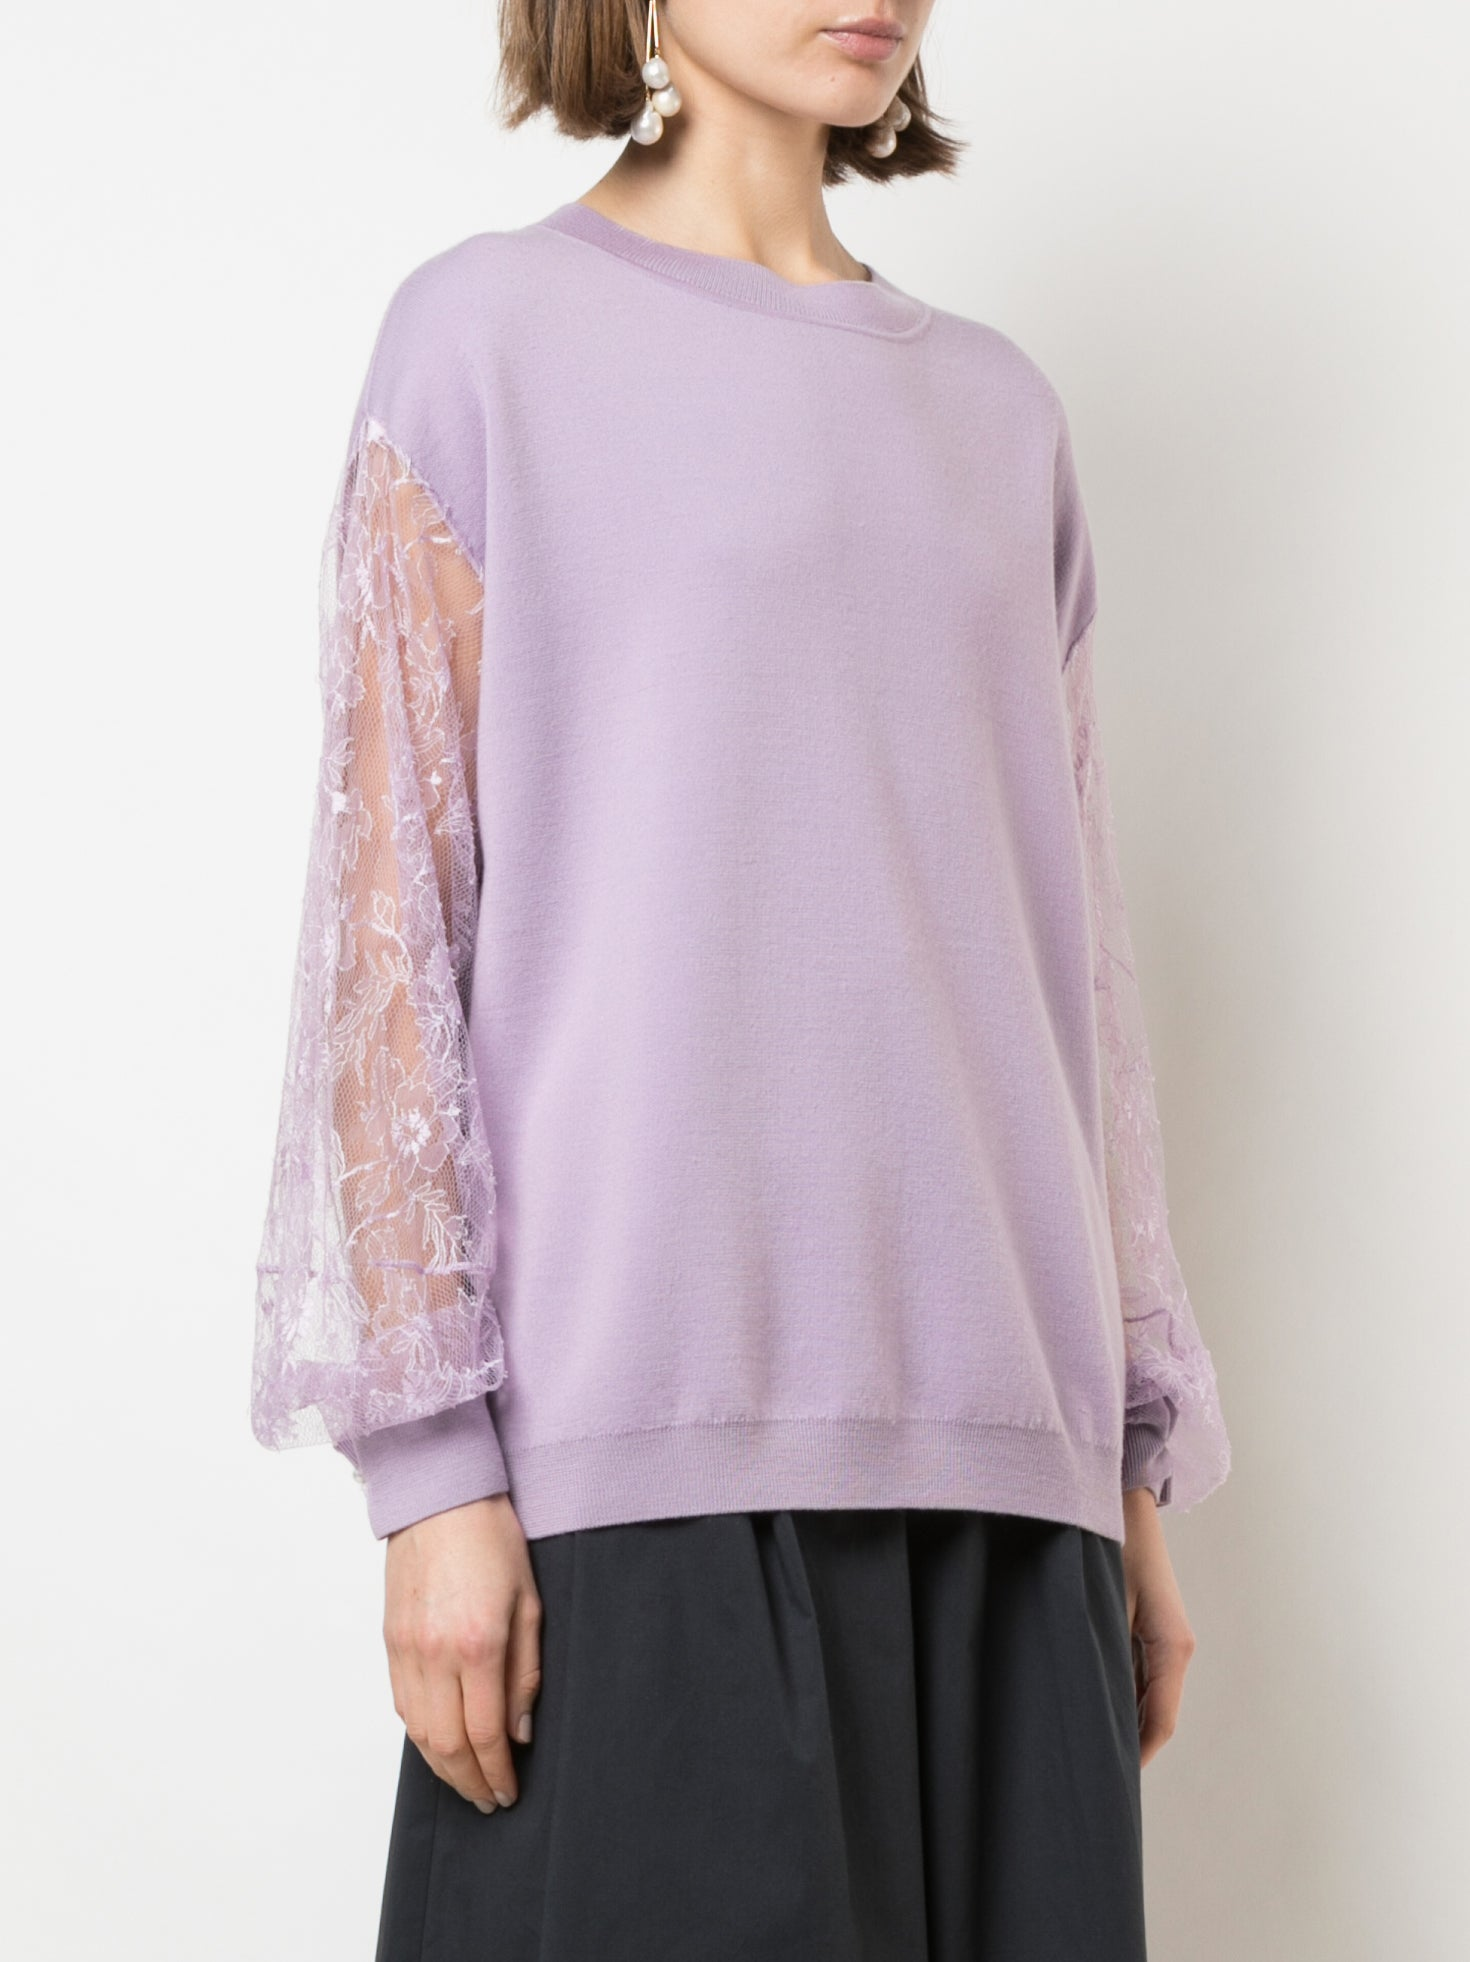 LACE SLEEVE SWEATER IN MERINO